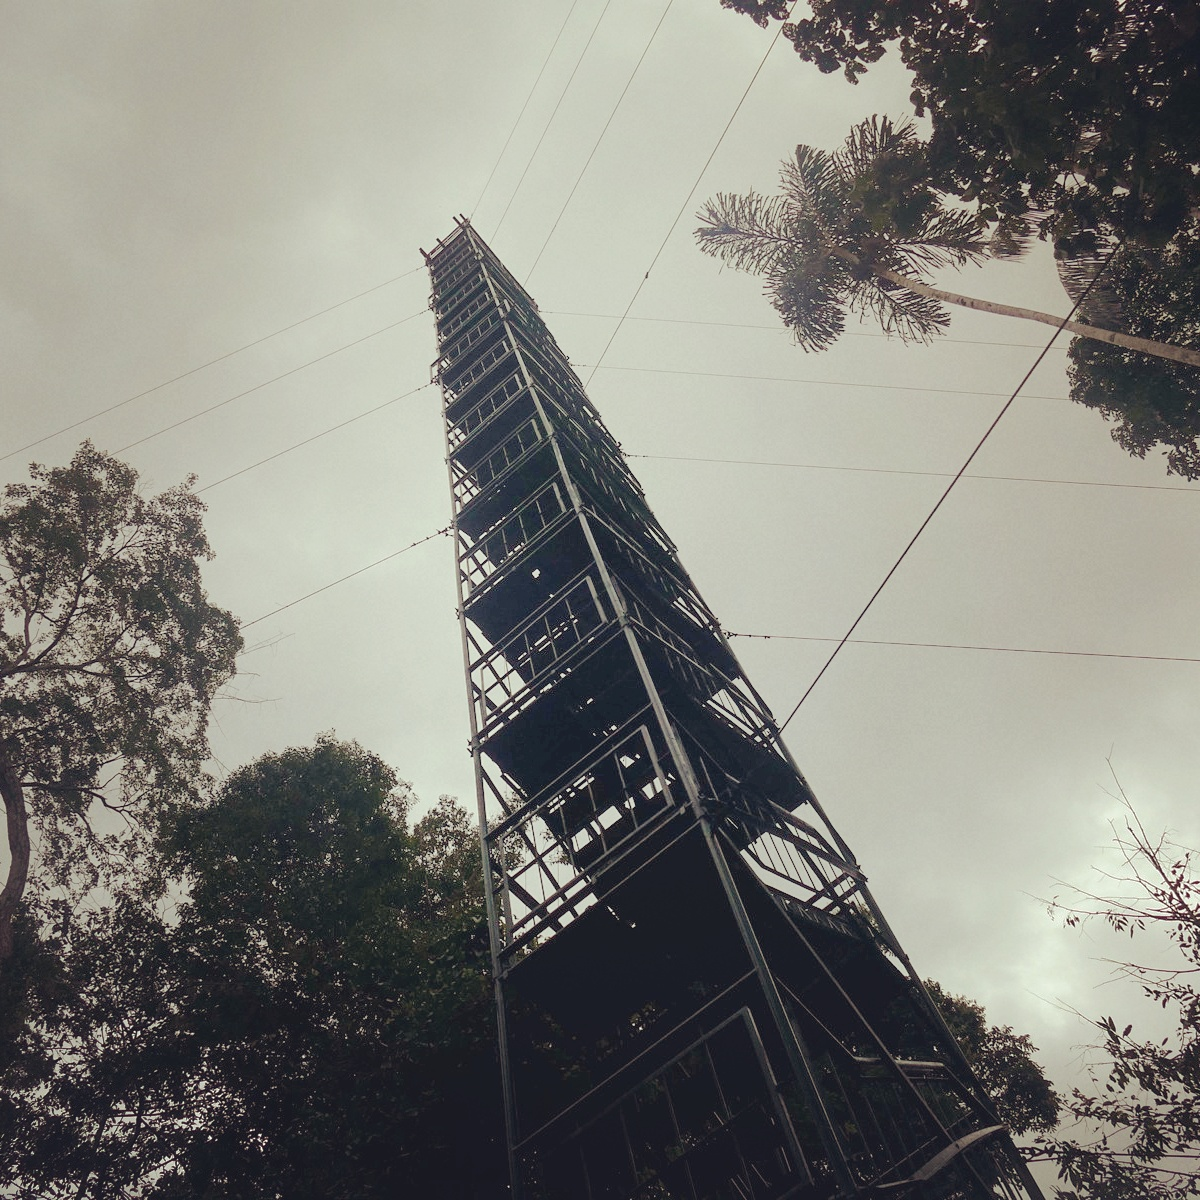 The canopy tower at Pousada Amazonas soars 190 feet above the forest, Peru. Noah Strycker